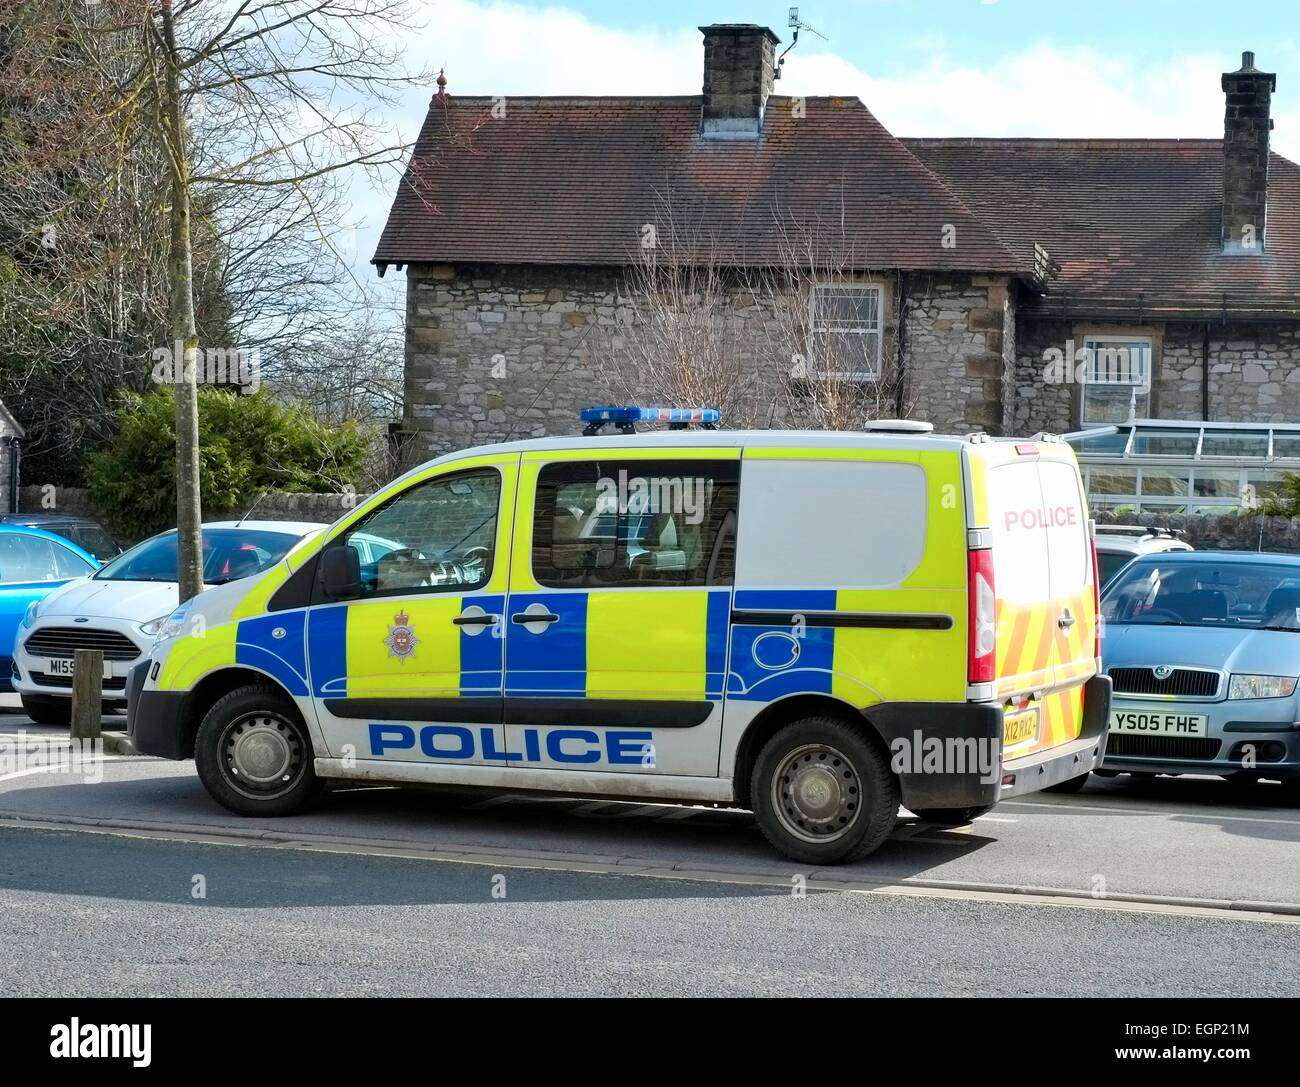 Bakewell,Derbyshire,England UK. A Police van parked at the side of the road. - Stock Image